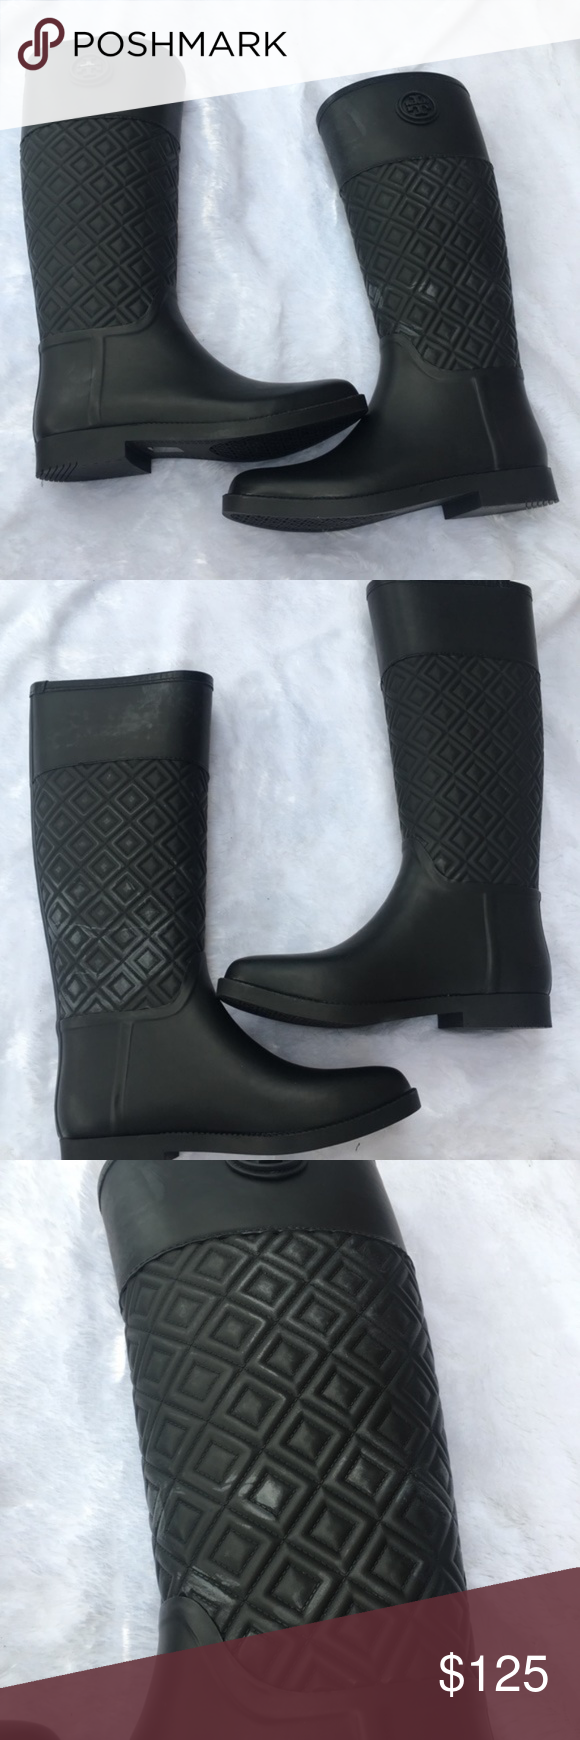 8788dd3a0fe971 Tory Burch Marion Quilted Rain Boots Pre-loved! Authentic Tory Burch Marion  Quilted Rain Boots. Color is Black. No box included. Right boot has some  peeling ...